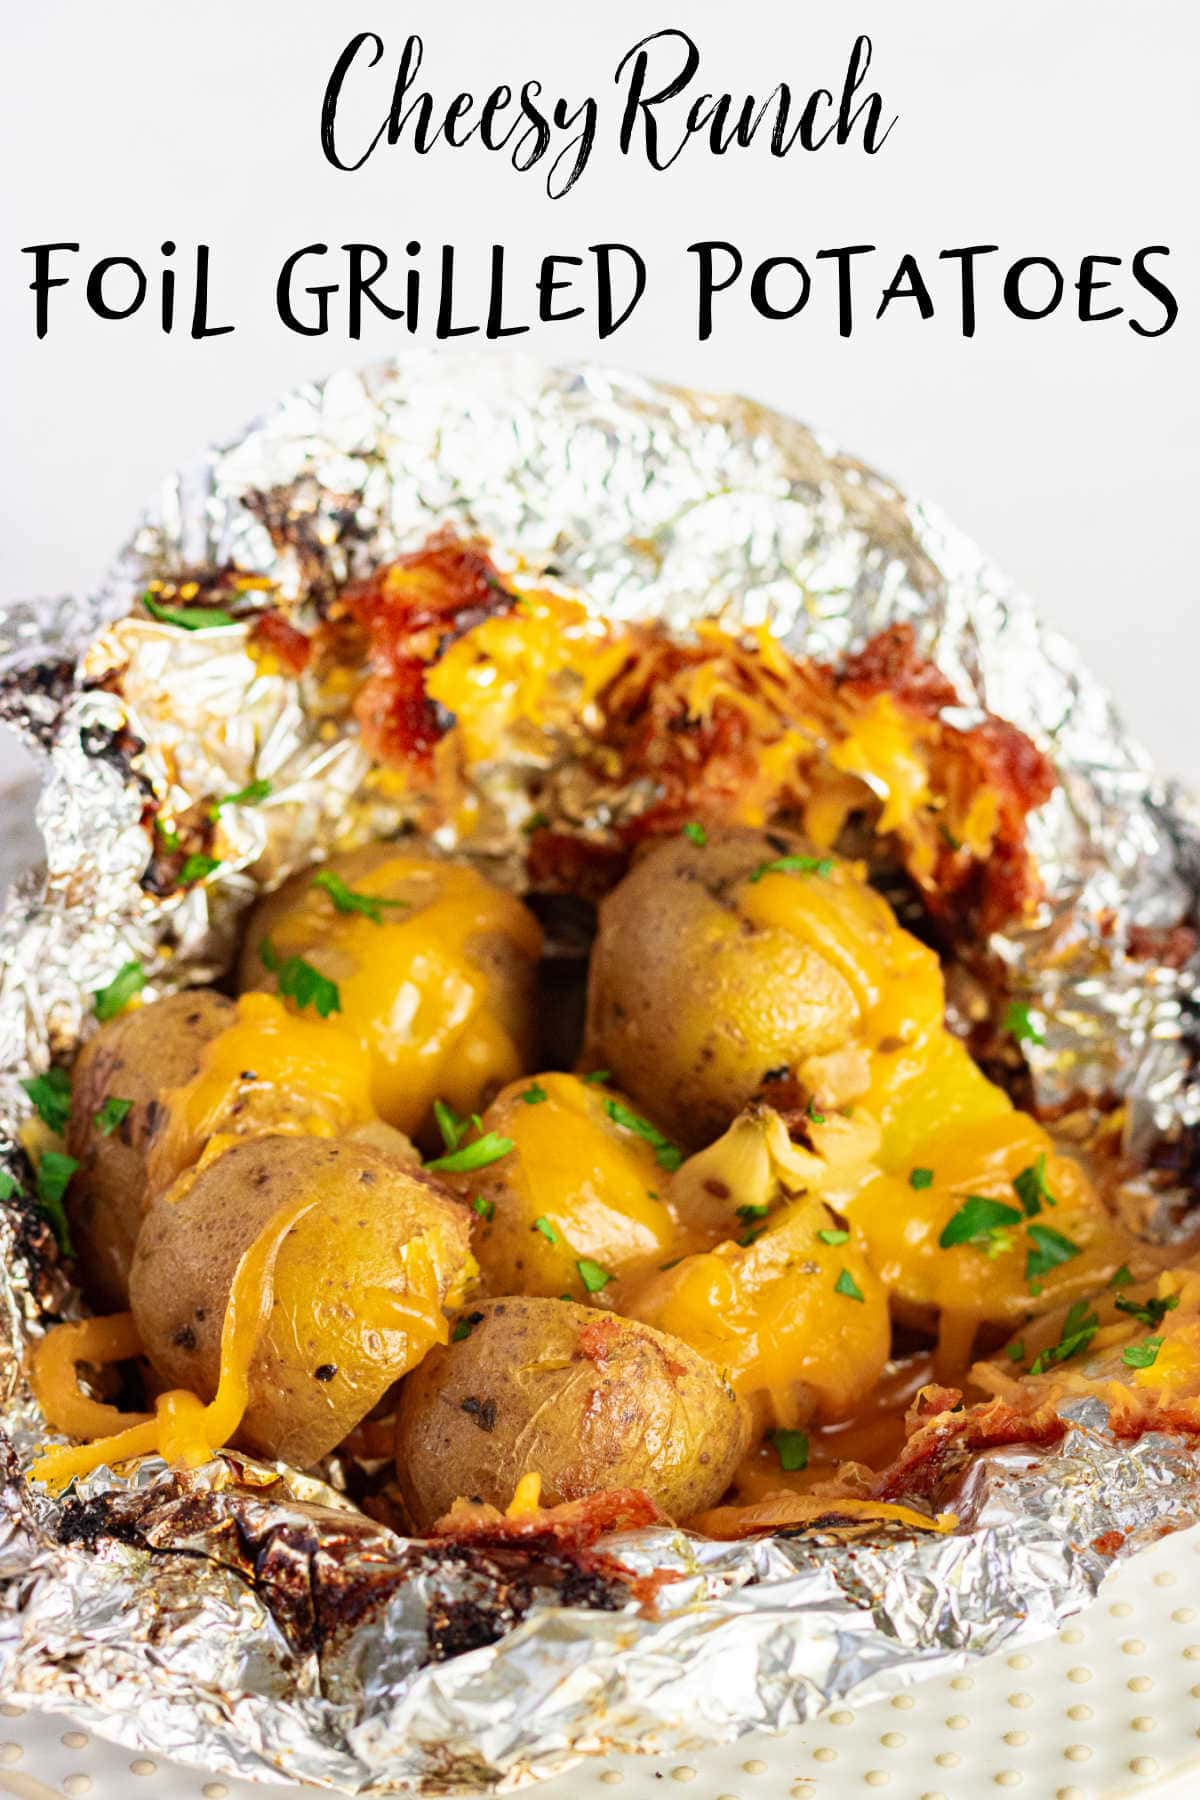 A closeup of cooked potatoes with cheese in an open foil packet.